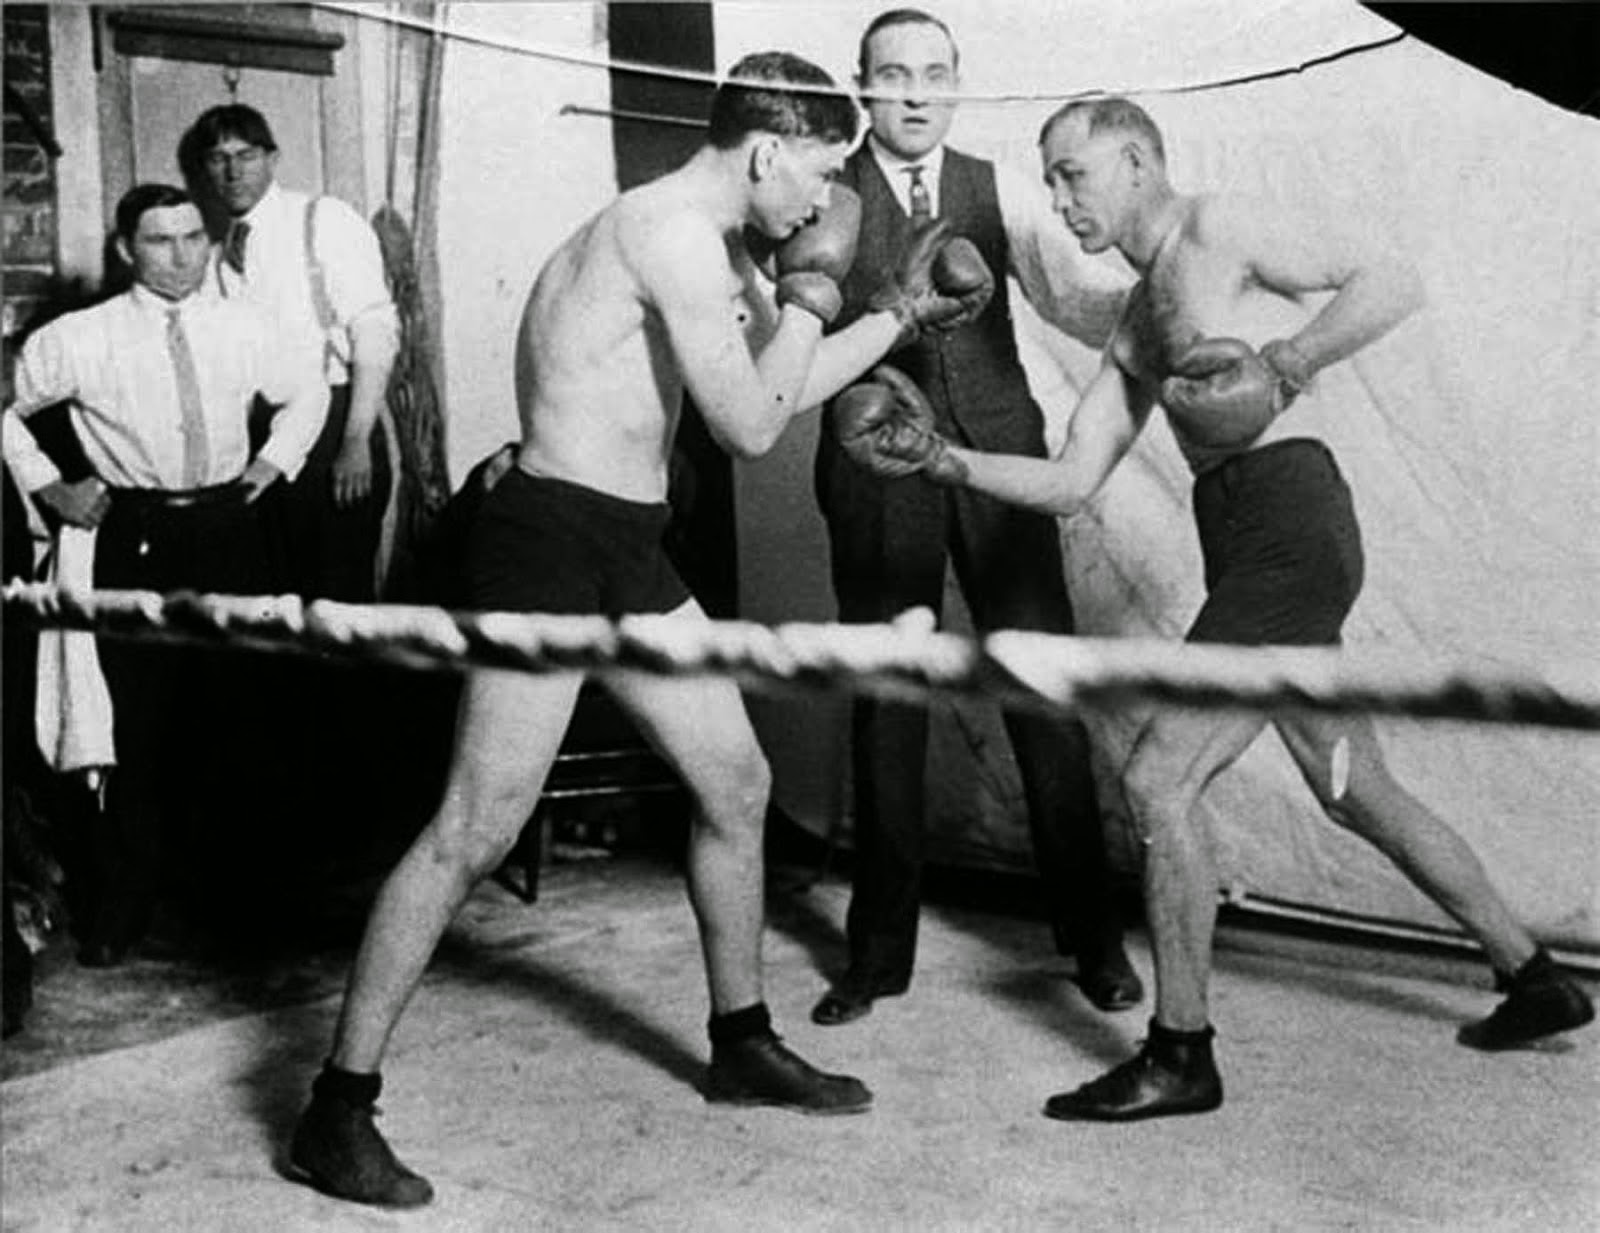 Erin's Escape: Boxing in the 1920's